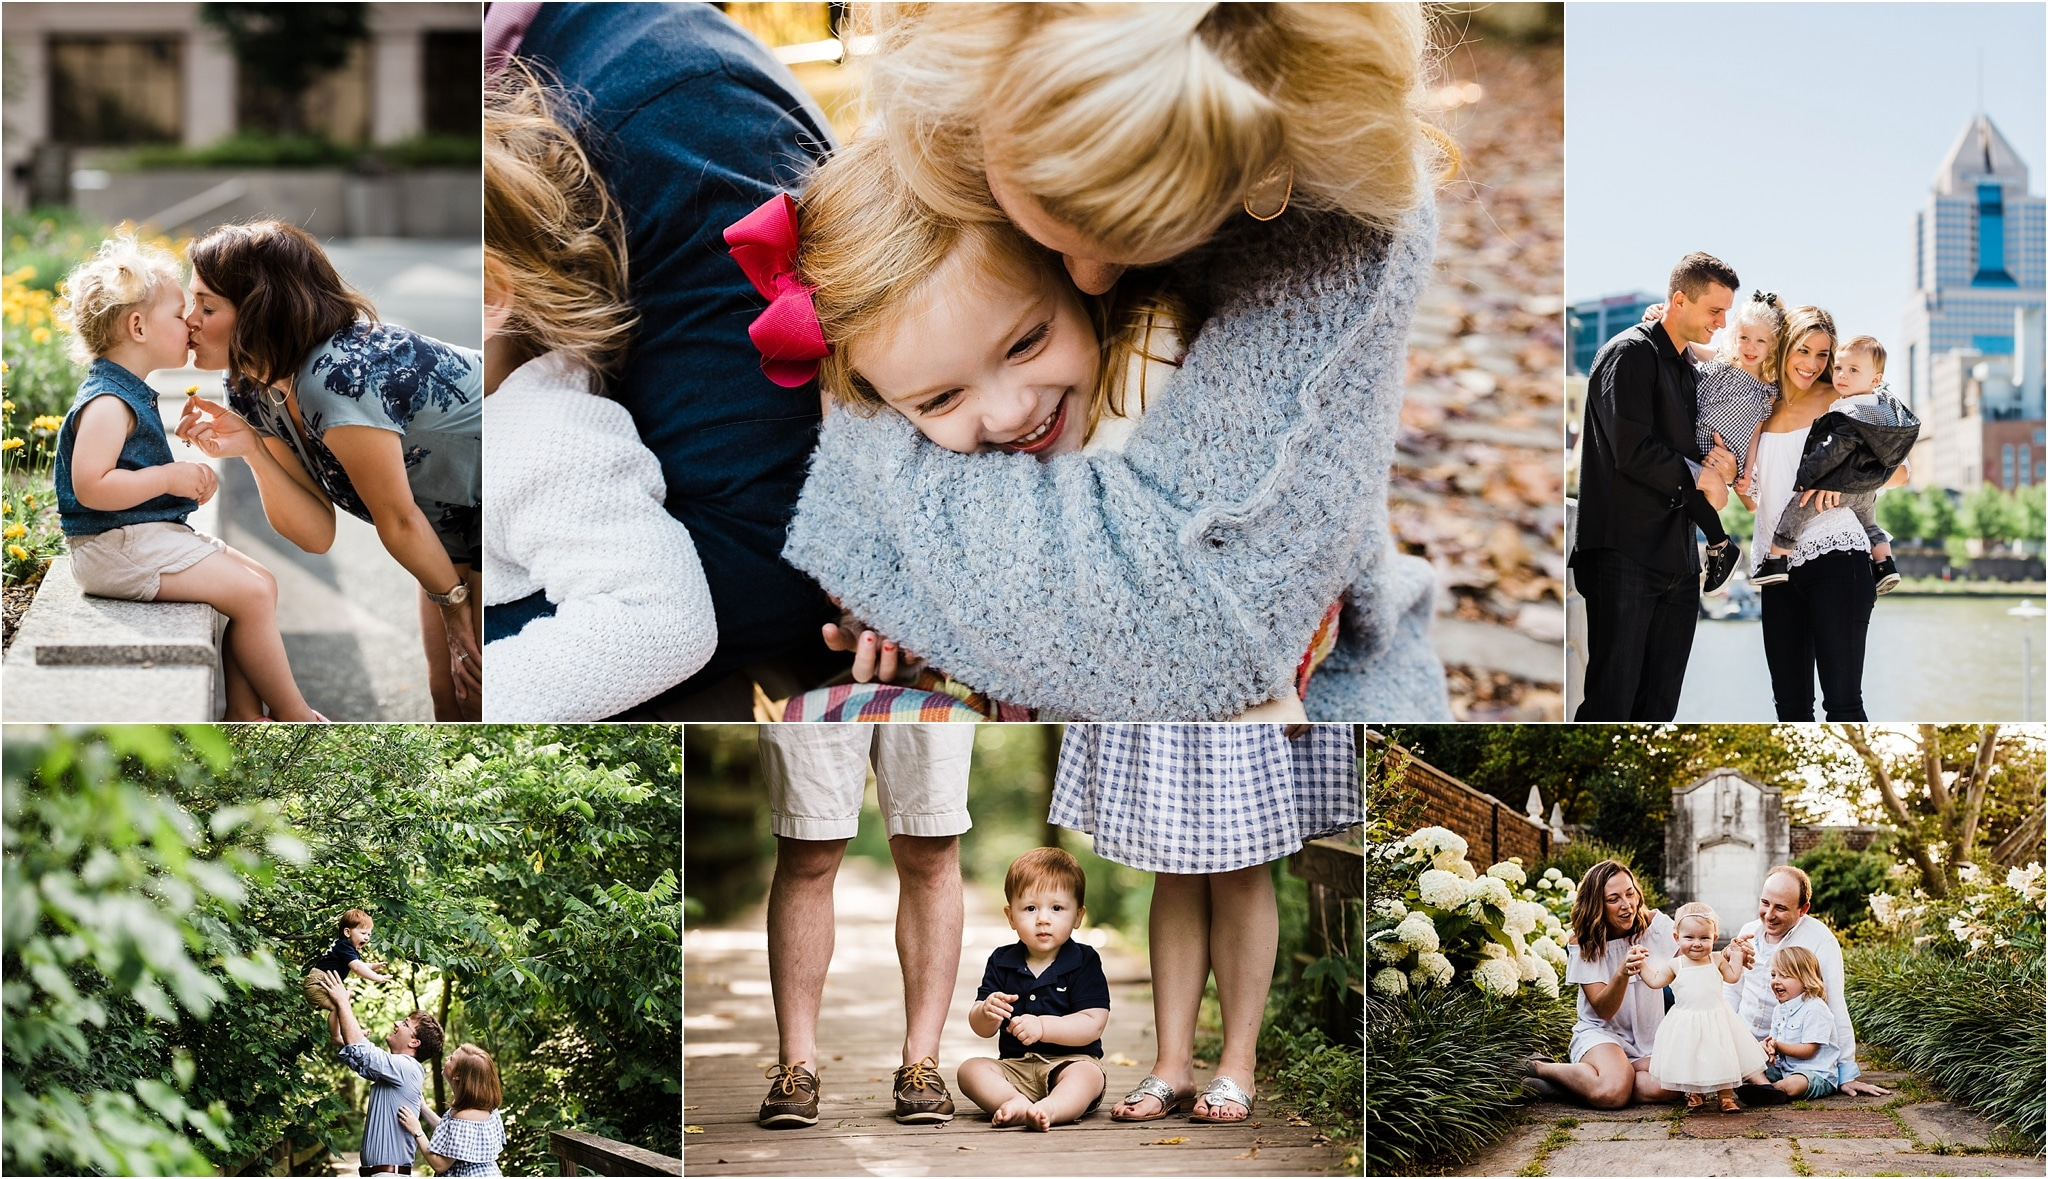 Outdoor Family Photos In Pittsburgh, PA